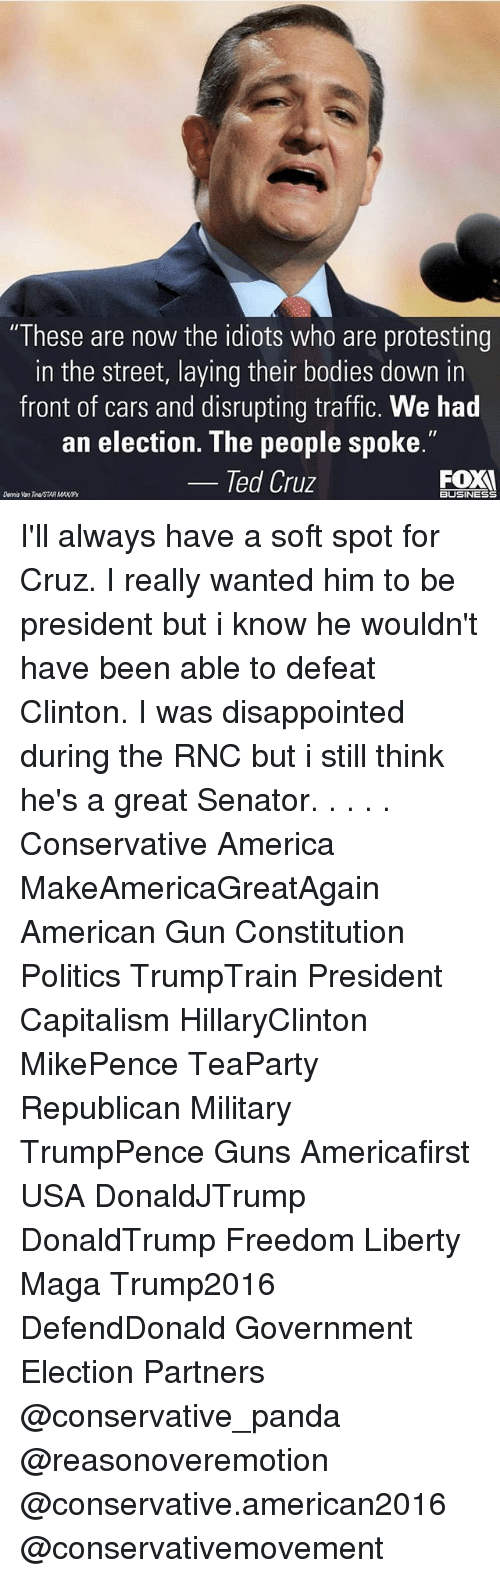 """I Was Disappointed: """"These are now the idiots who are protesting  in the street, laying their bodies down in  front of cars and disrupting traffic. We had  an election. The people spoke.""""  Ted Cruz  FOXI  Dennis Van neSTAR MAXIP  BUSINESS I'll always have a soft spot for Cruz. I really wanted him to be president but i know he wouldn't have been able to defeat Clinton. I was disappointed during the RNC but i still think he's a great Senator. . . . . Conservative America MakeAmericaGreatAgain American Gun Constitution Politics TrumpTrain President Capitalism HillaryClinton MikePence TeaParty Republican Military TrumpPence Guns Americafirst USA DonaldJTrump DonaldTrump Freedom Liberty Maga Trump2016 DefendDonald Government Election Partners @conservative_panda @reasonoveremotion @conservative.american2016 @conservativemovement"""